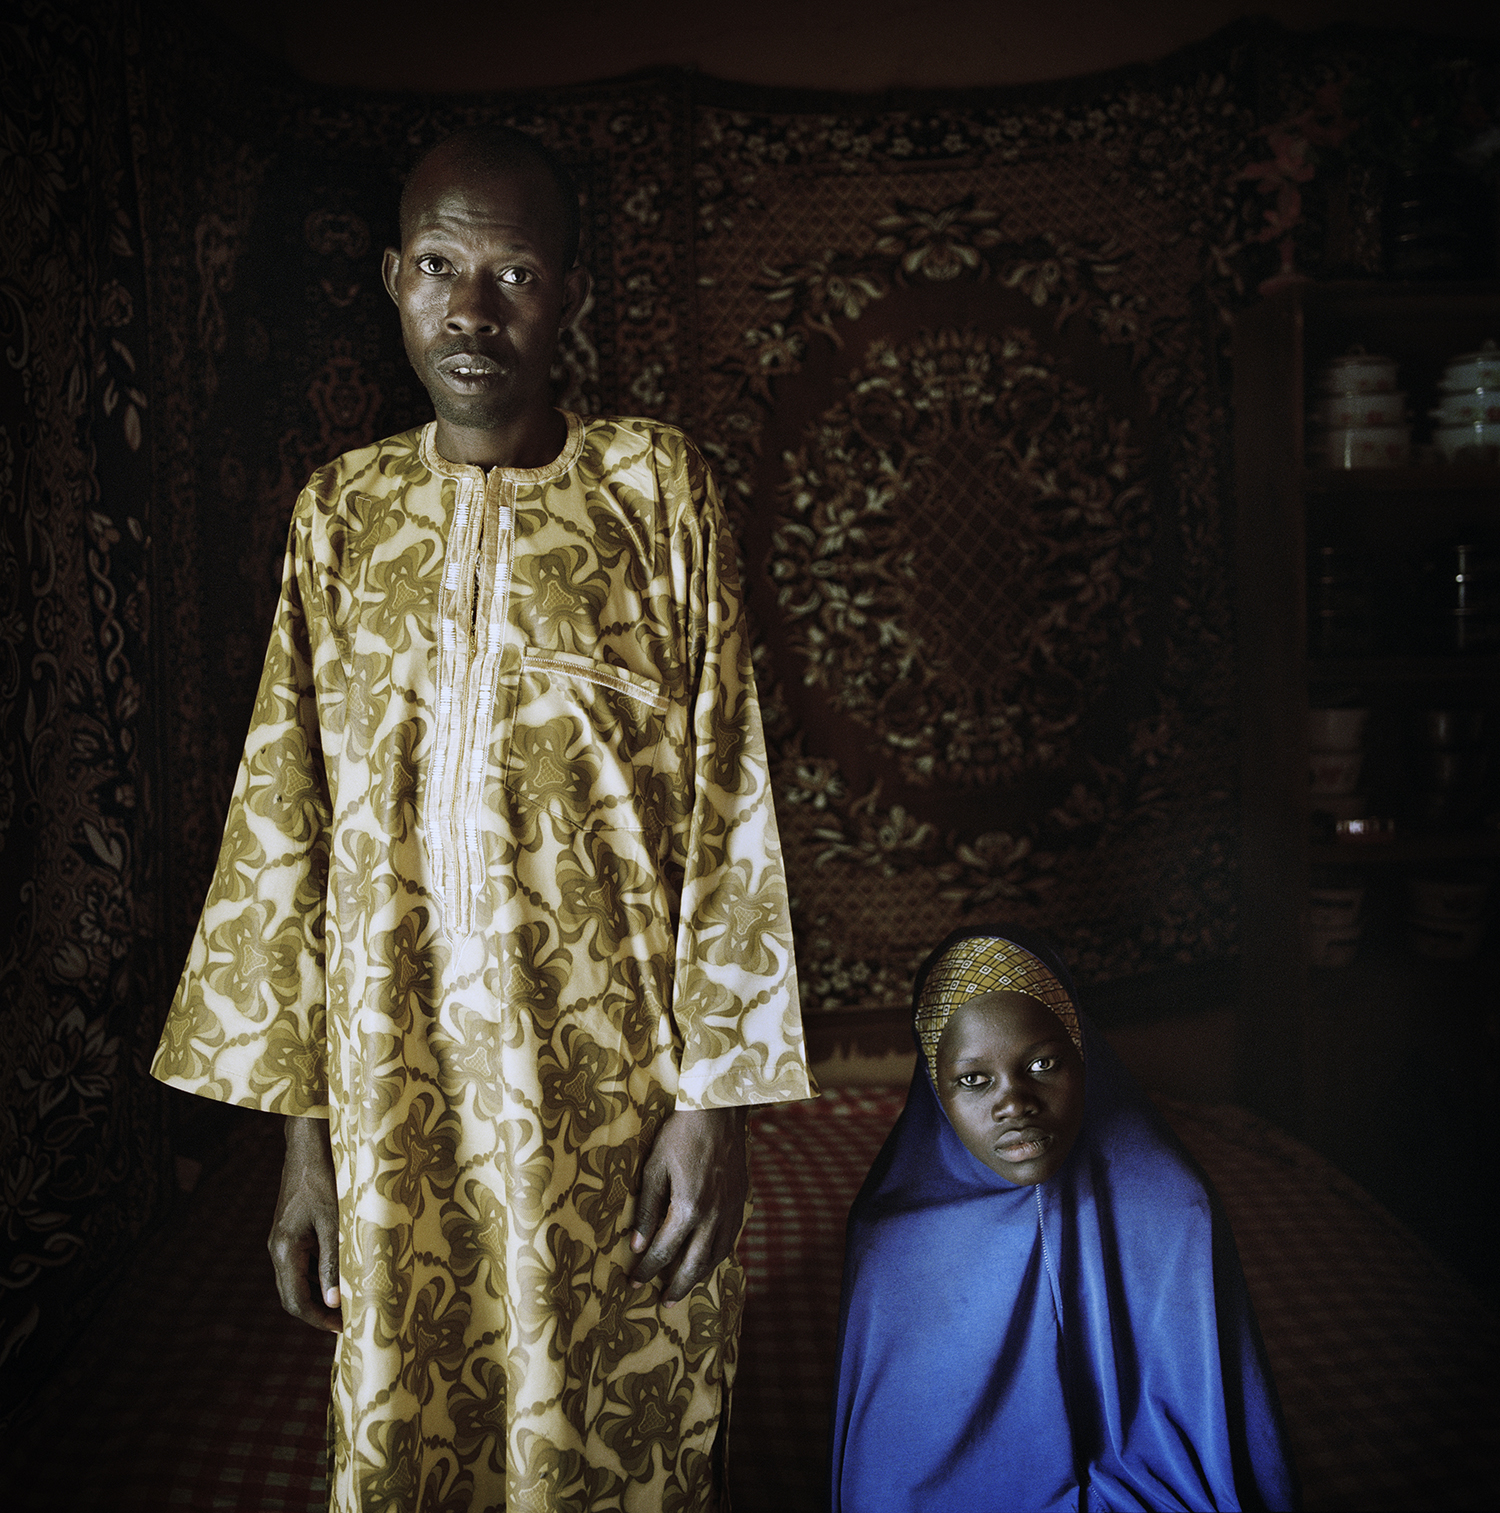 Child_Marriage_Niger_025.jpg